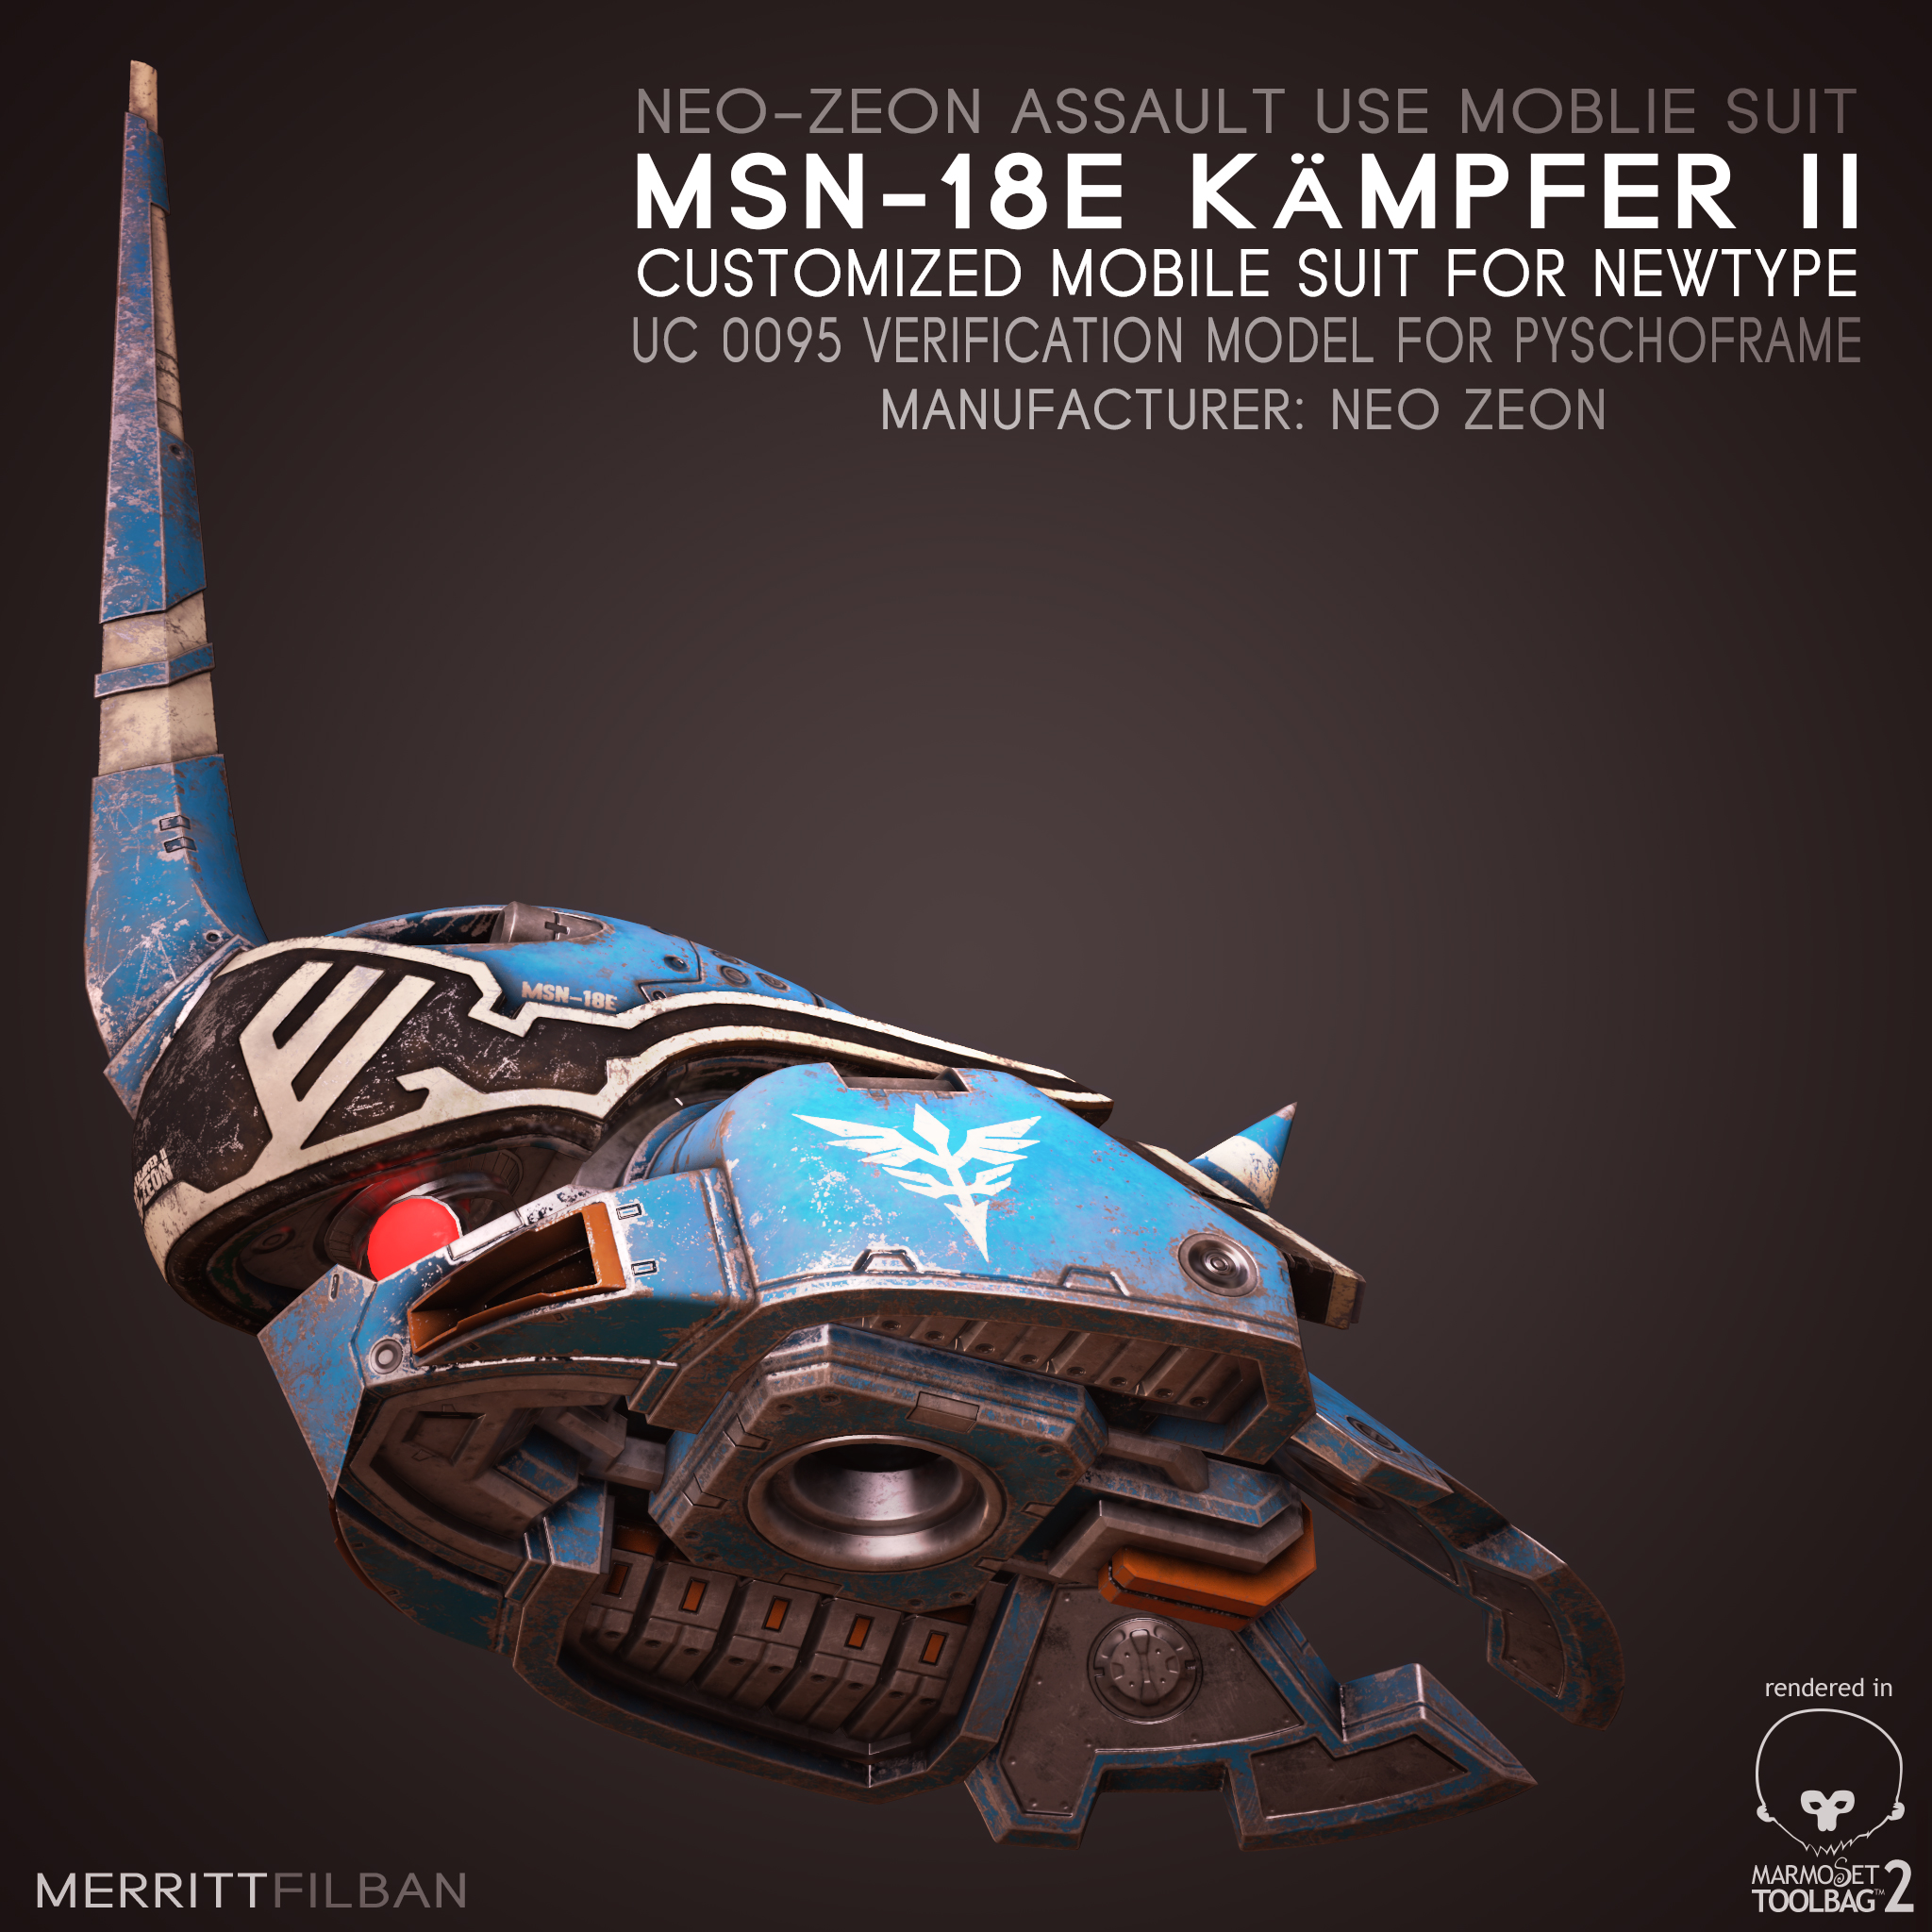 MSN-18E_Kampfer_II_Square_04